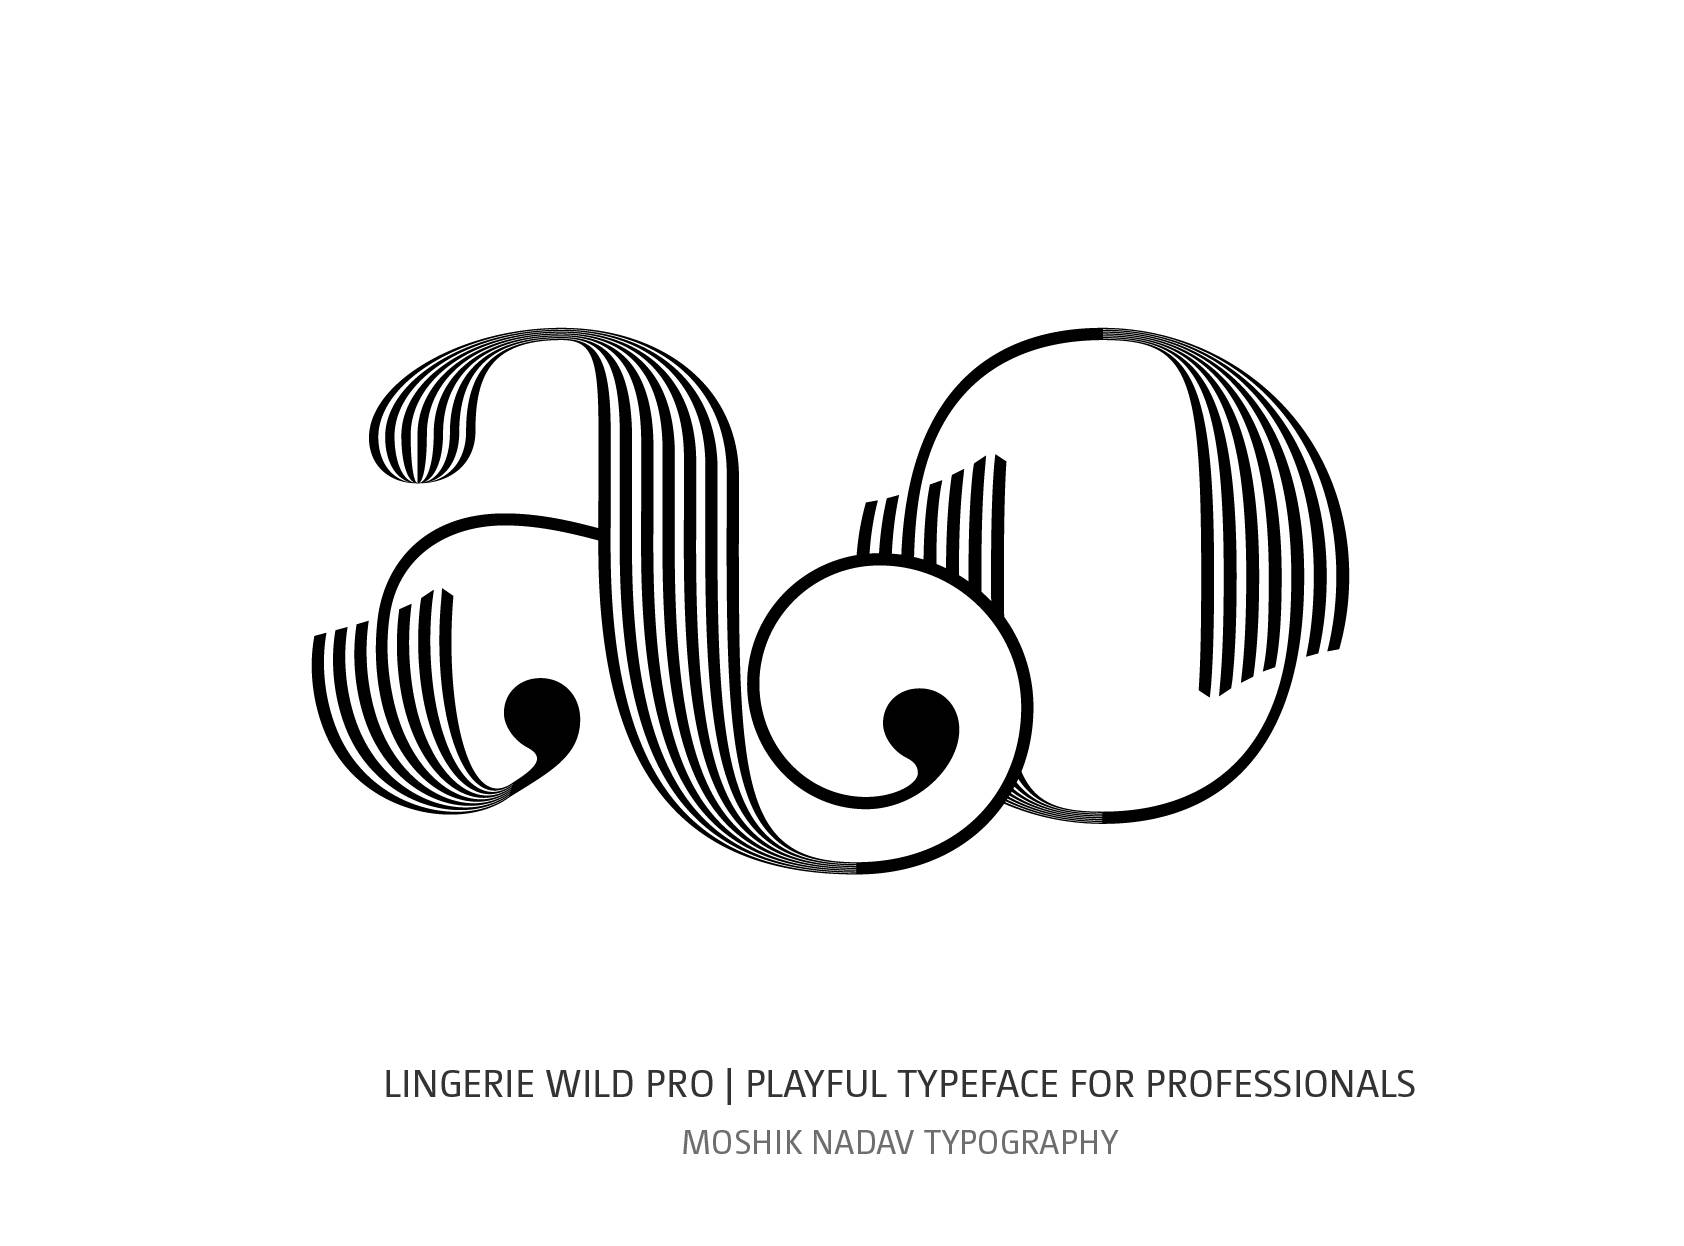 ao fashion font designed with Lingerie Wild Pro Typeface